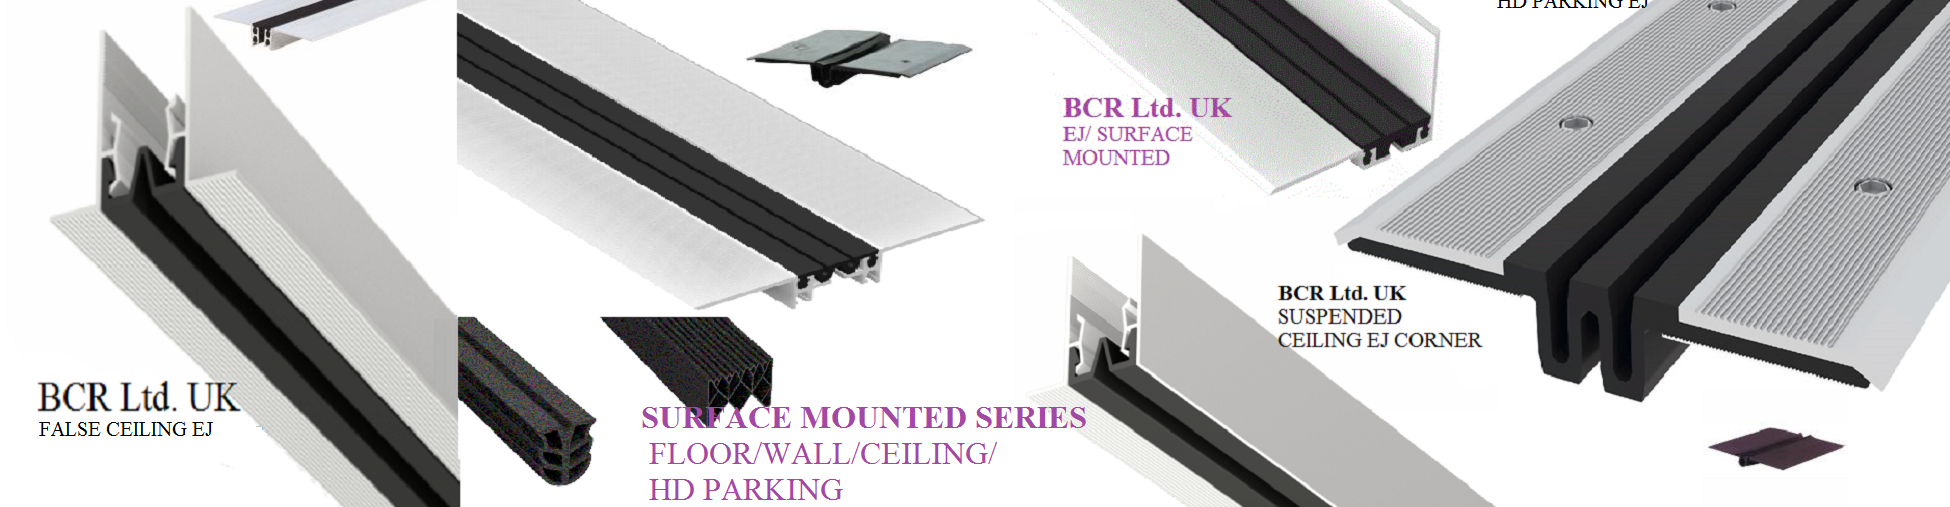 BCR SURFACE MOUNTED EXPANSION JOINTS